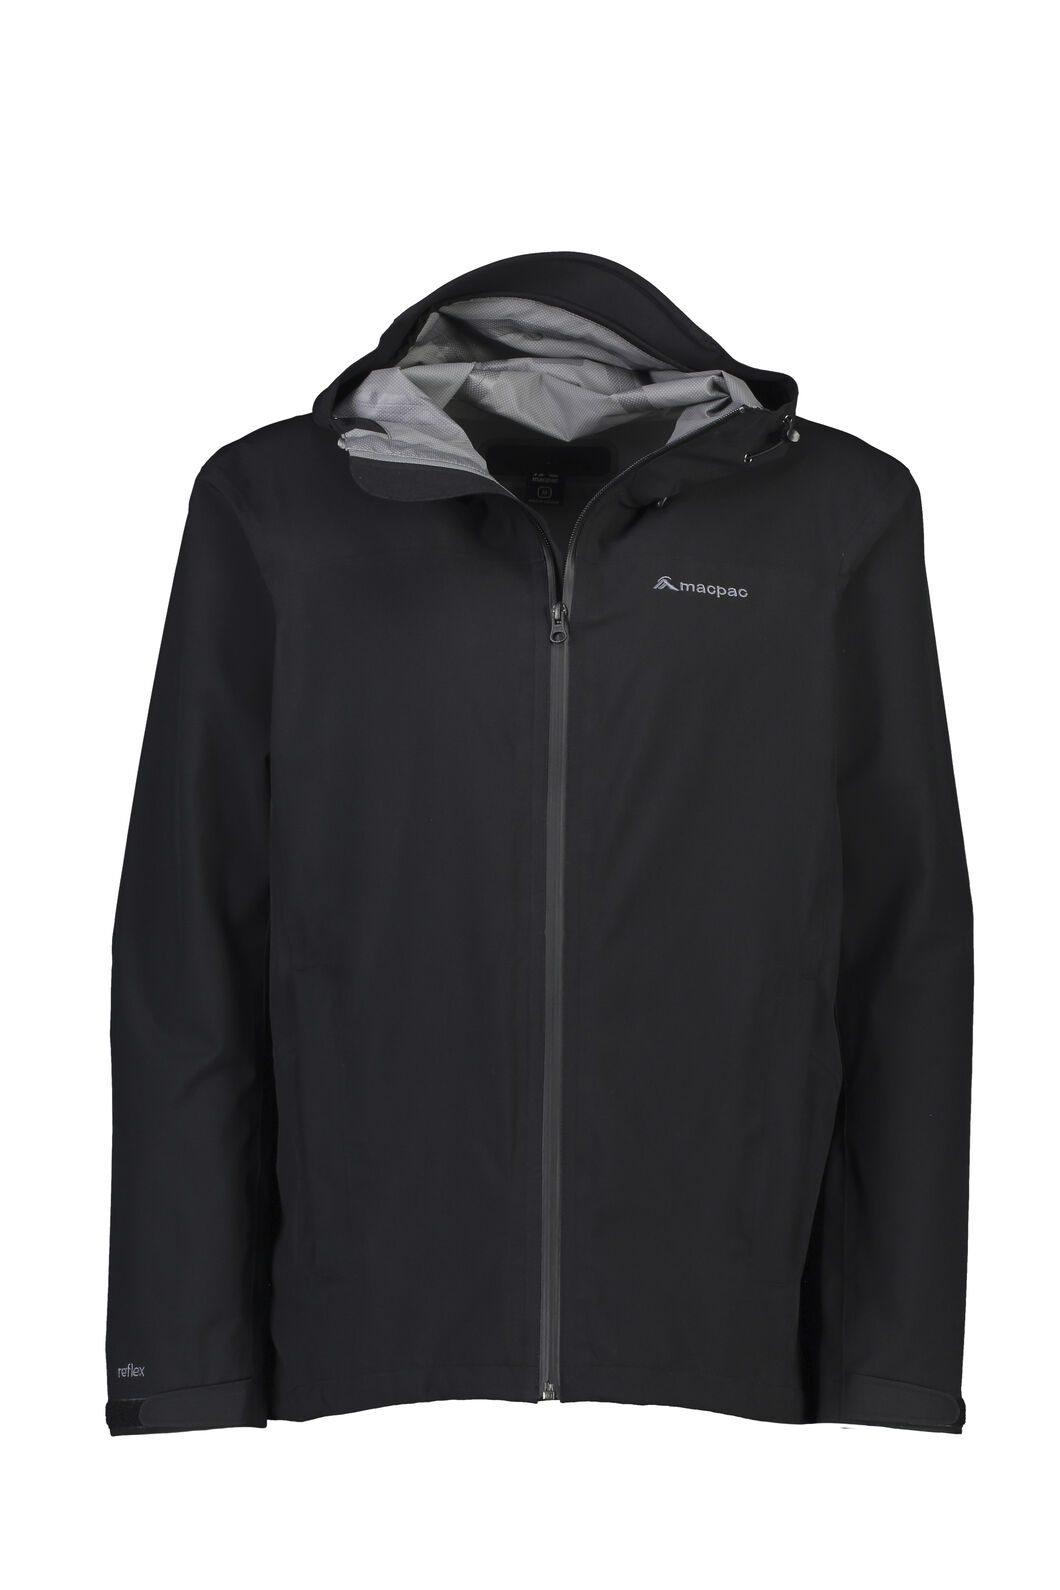 Macpac Dispatch Rain Jacket — Men's, Black, hi-res